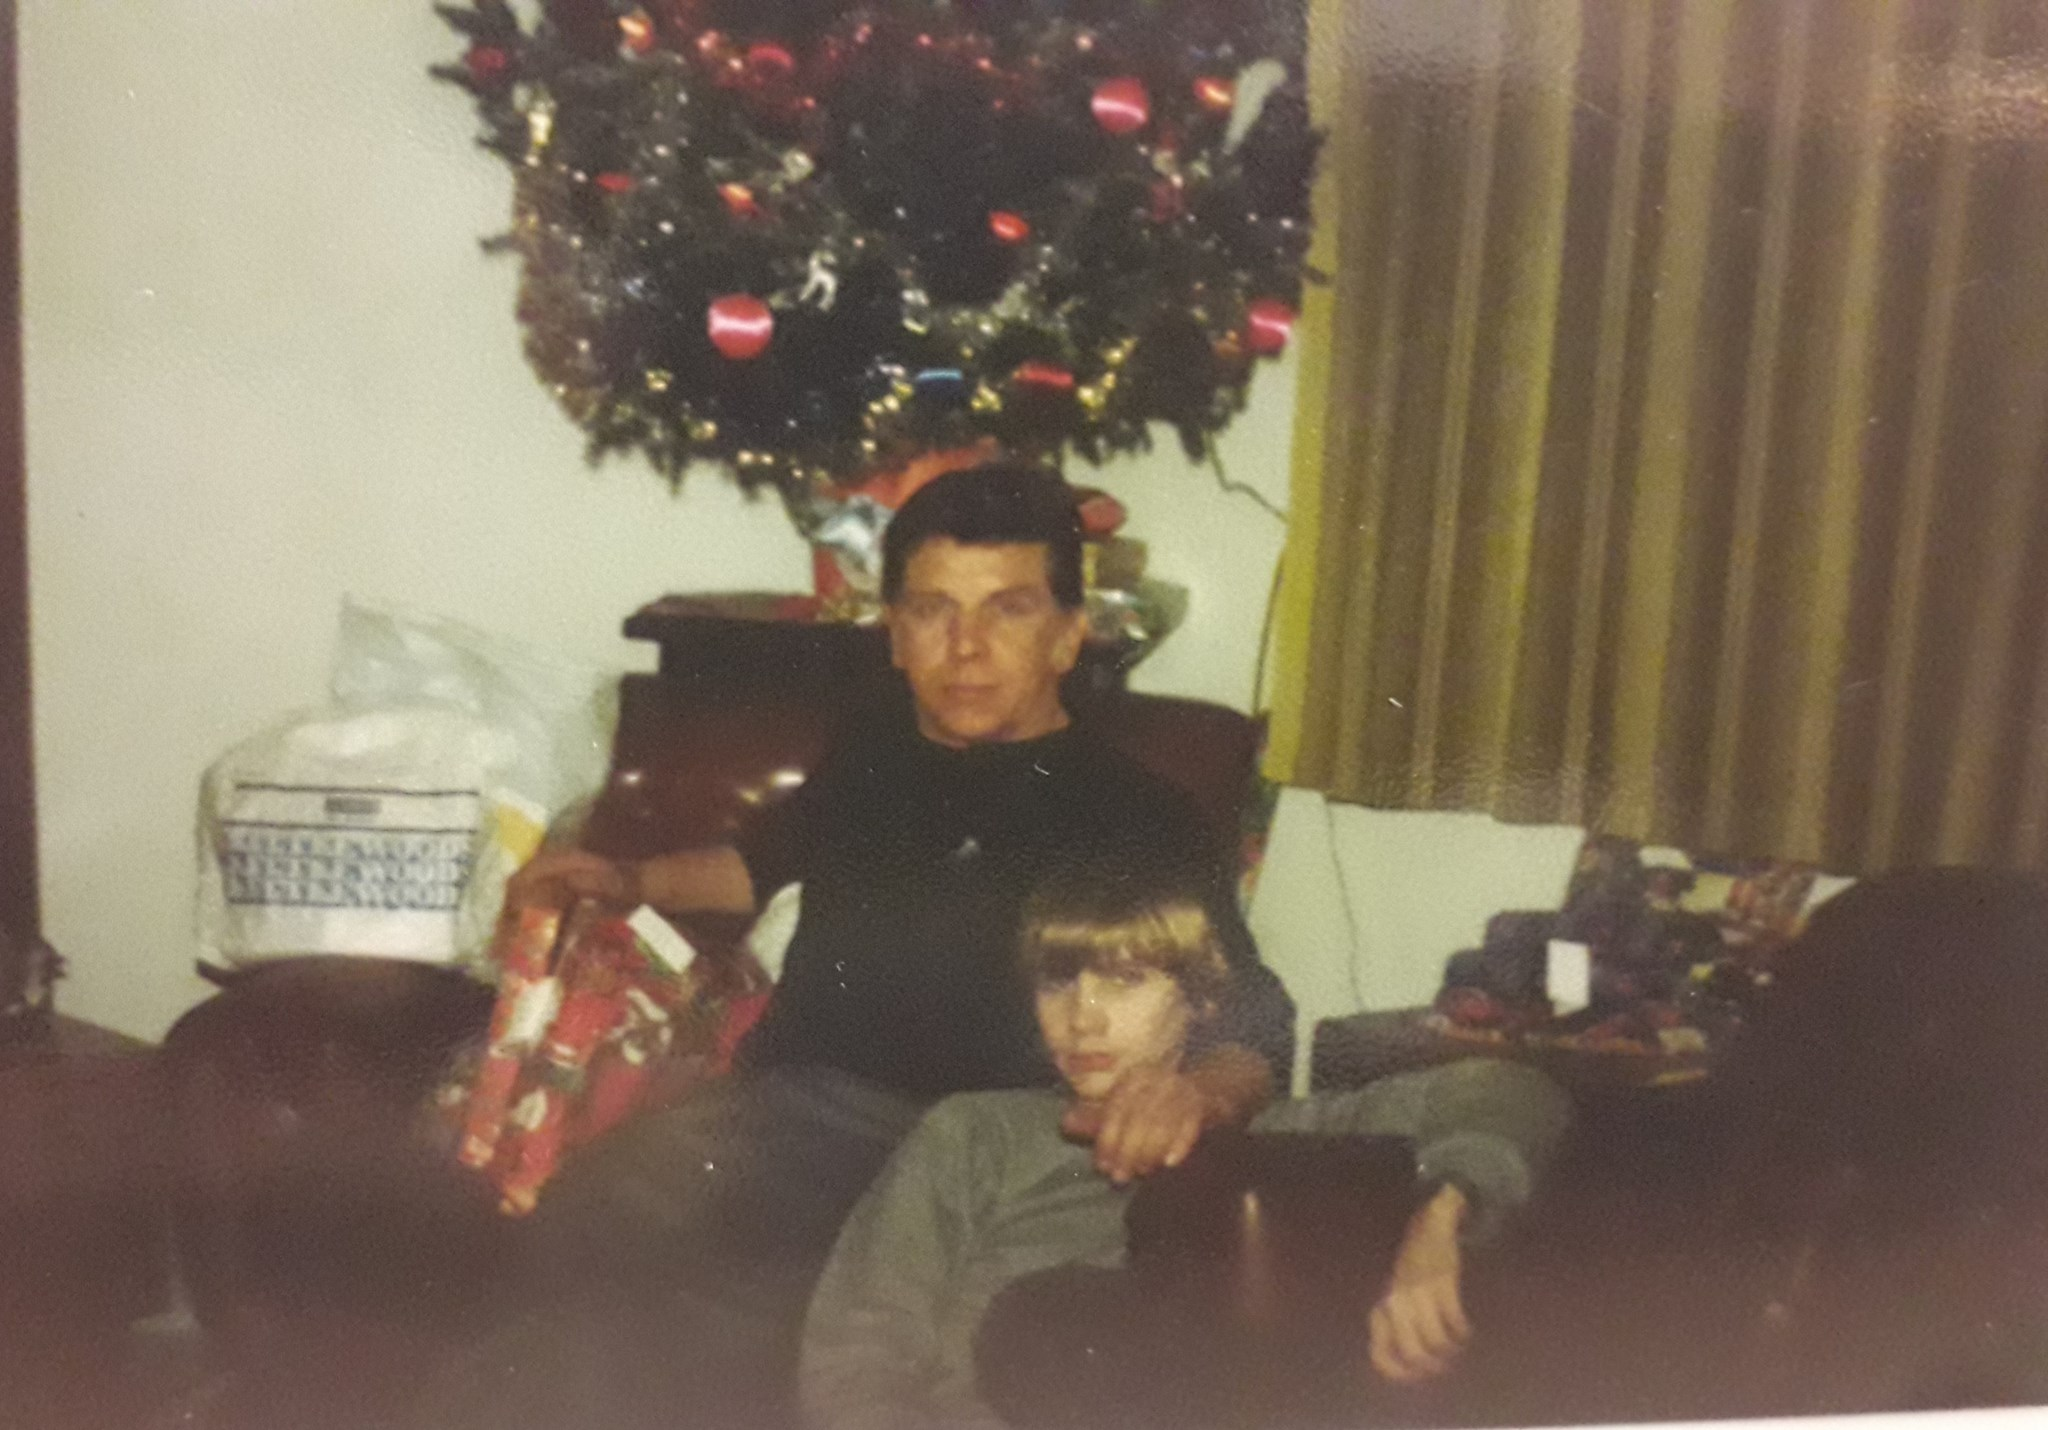 My dad and Gary Xmas eve late 1970,s